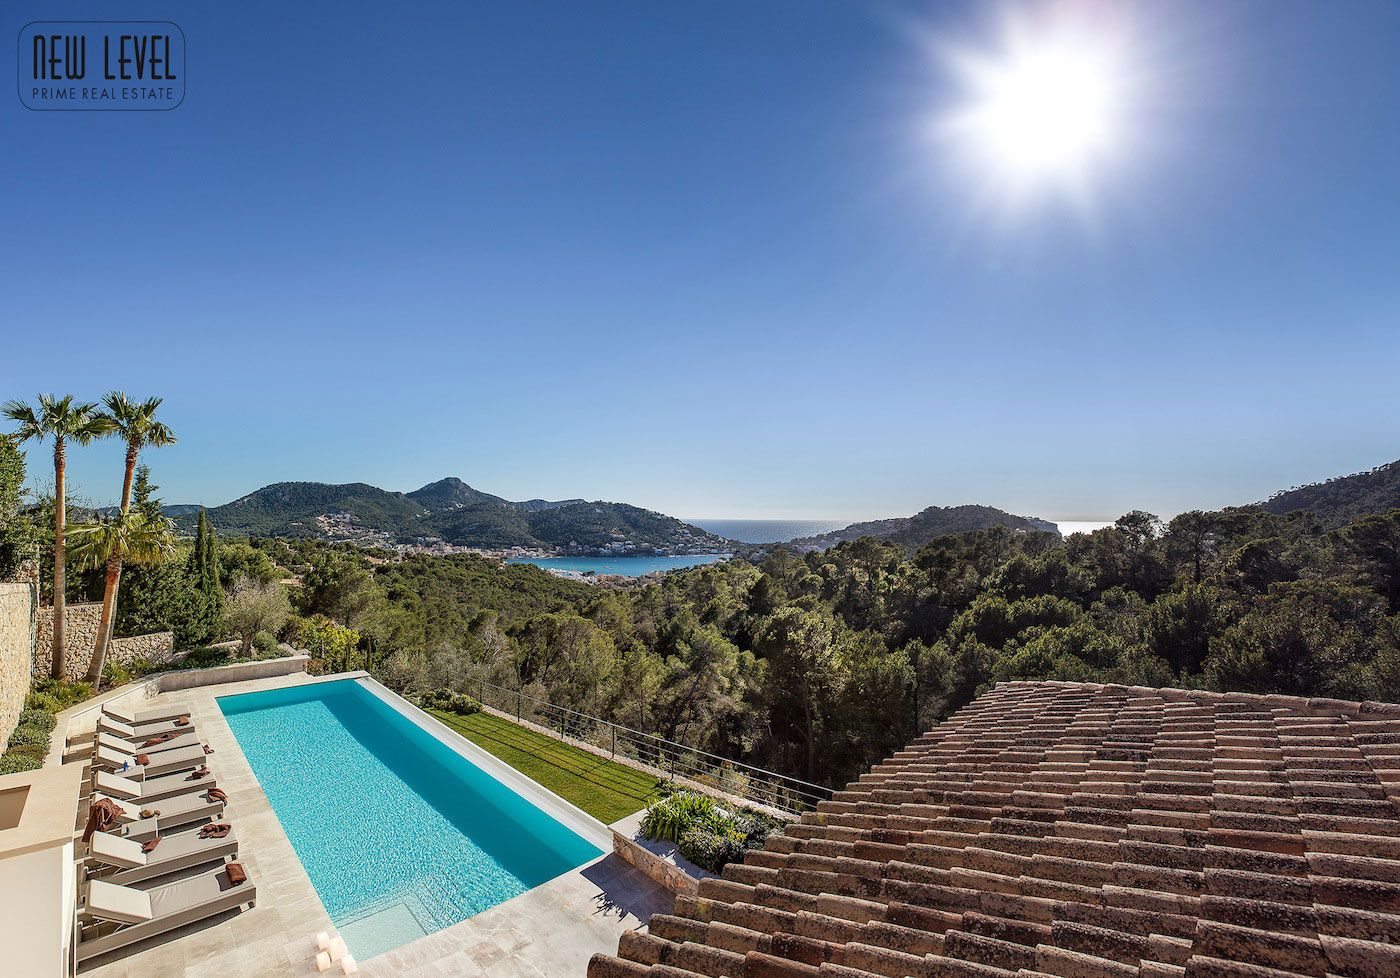 Luxury Villa With Fantastic Views Over the Hills of Mallorca-02